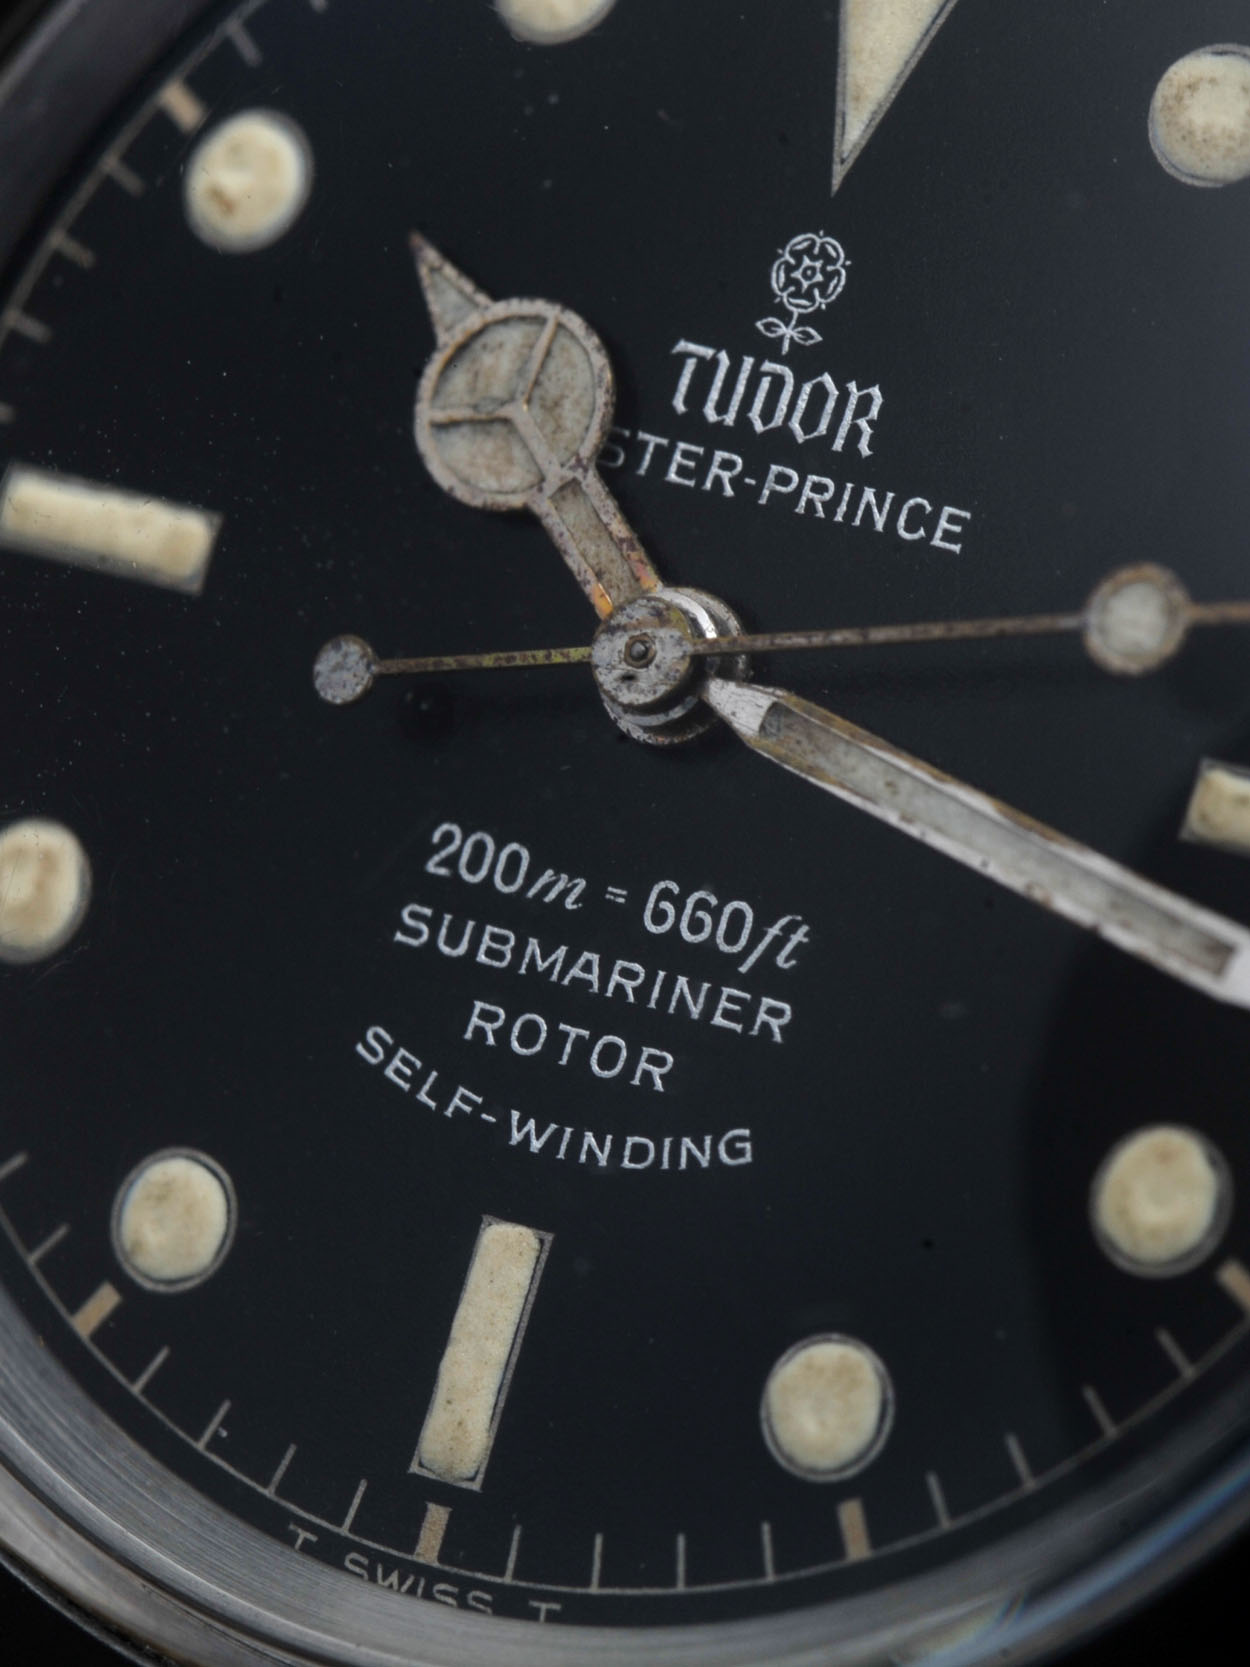 B&S Tudor W-23 7928 Ross 19